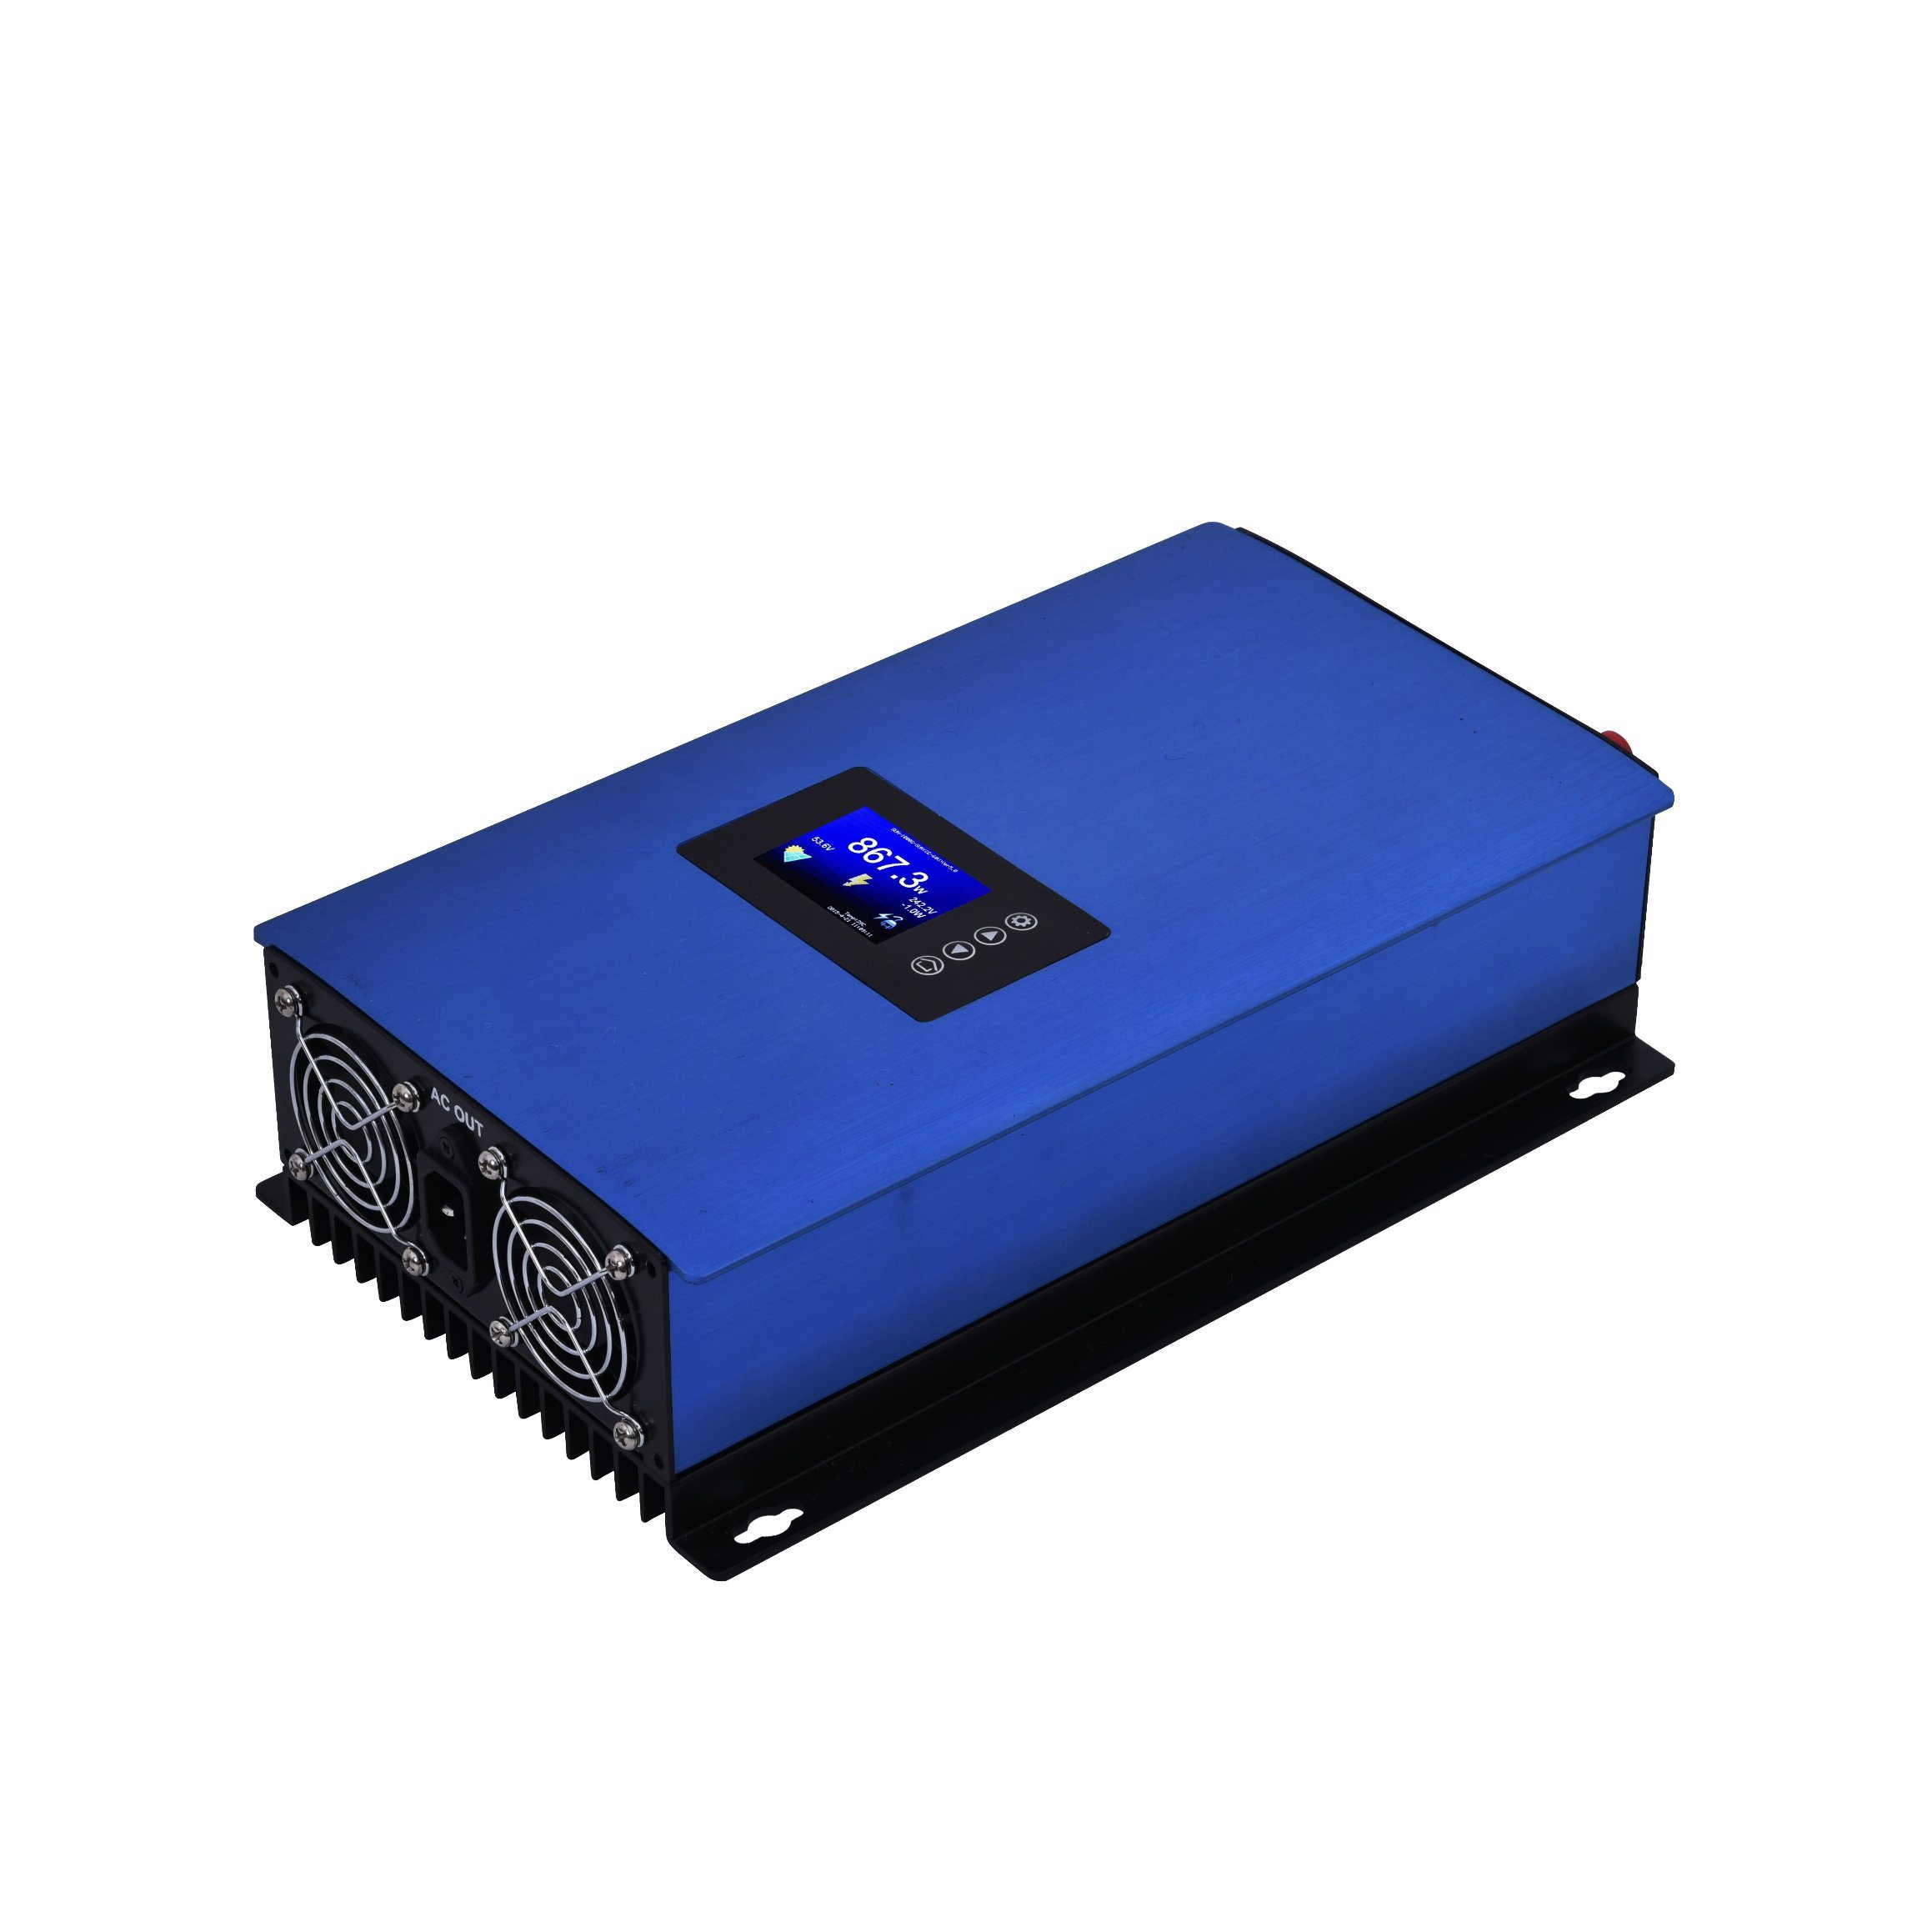 China Wifi Monitor 1kw Grid Tie Inverter With Battery Backup 2000w Waterproof Charging Circuit Board For Power